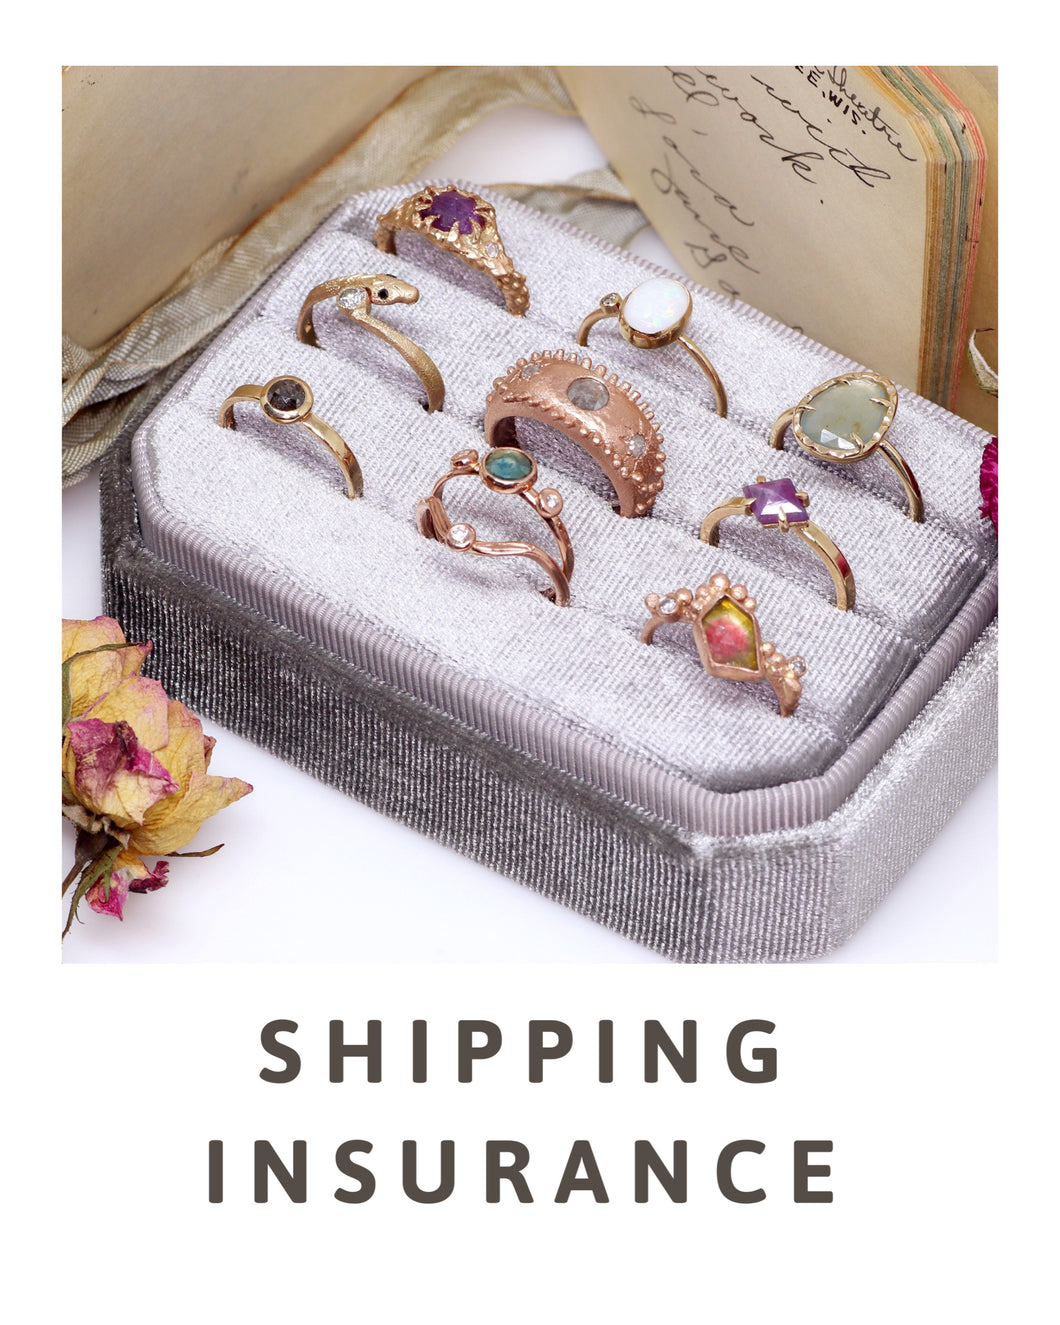 Shipping Insurance add-on